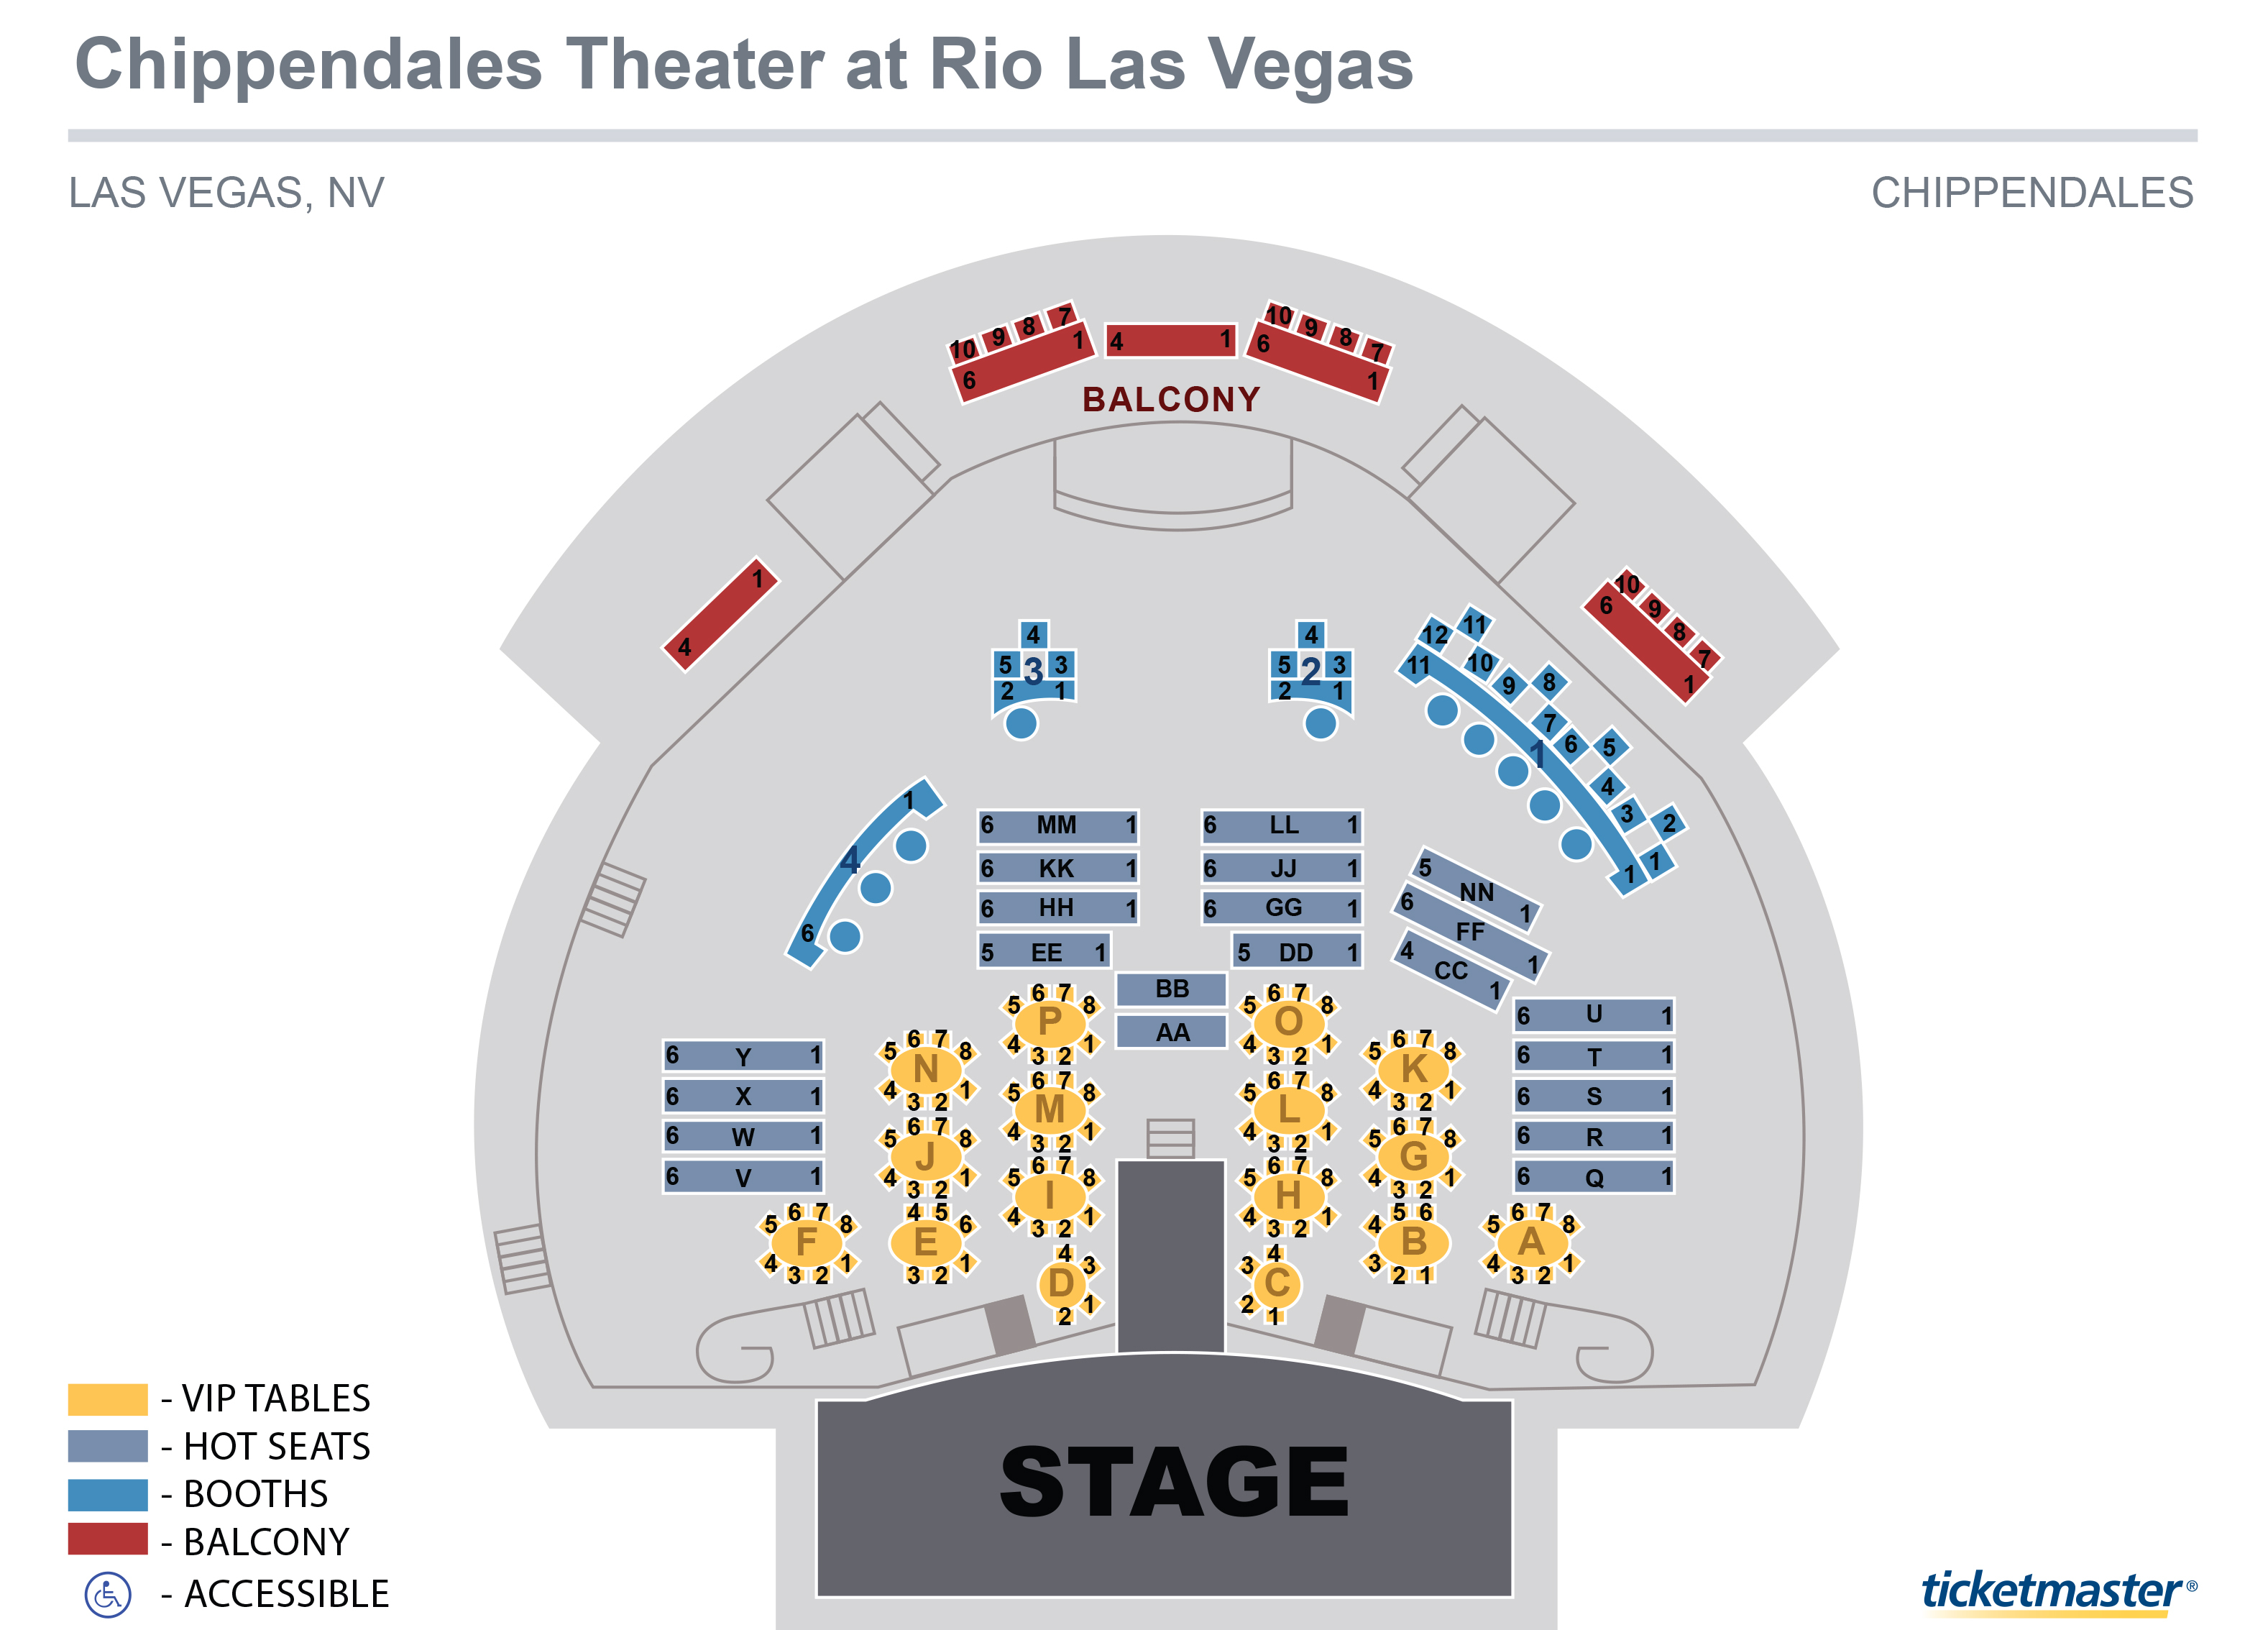 Chippendales Theater Seating